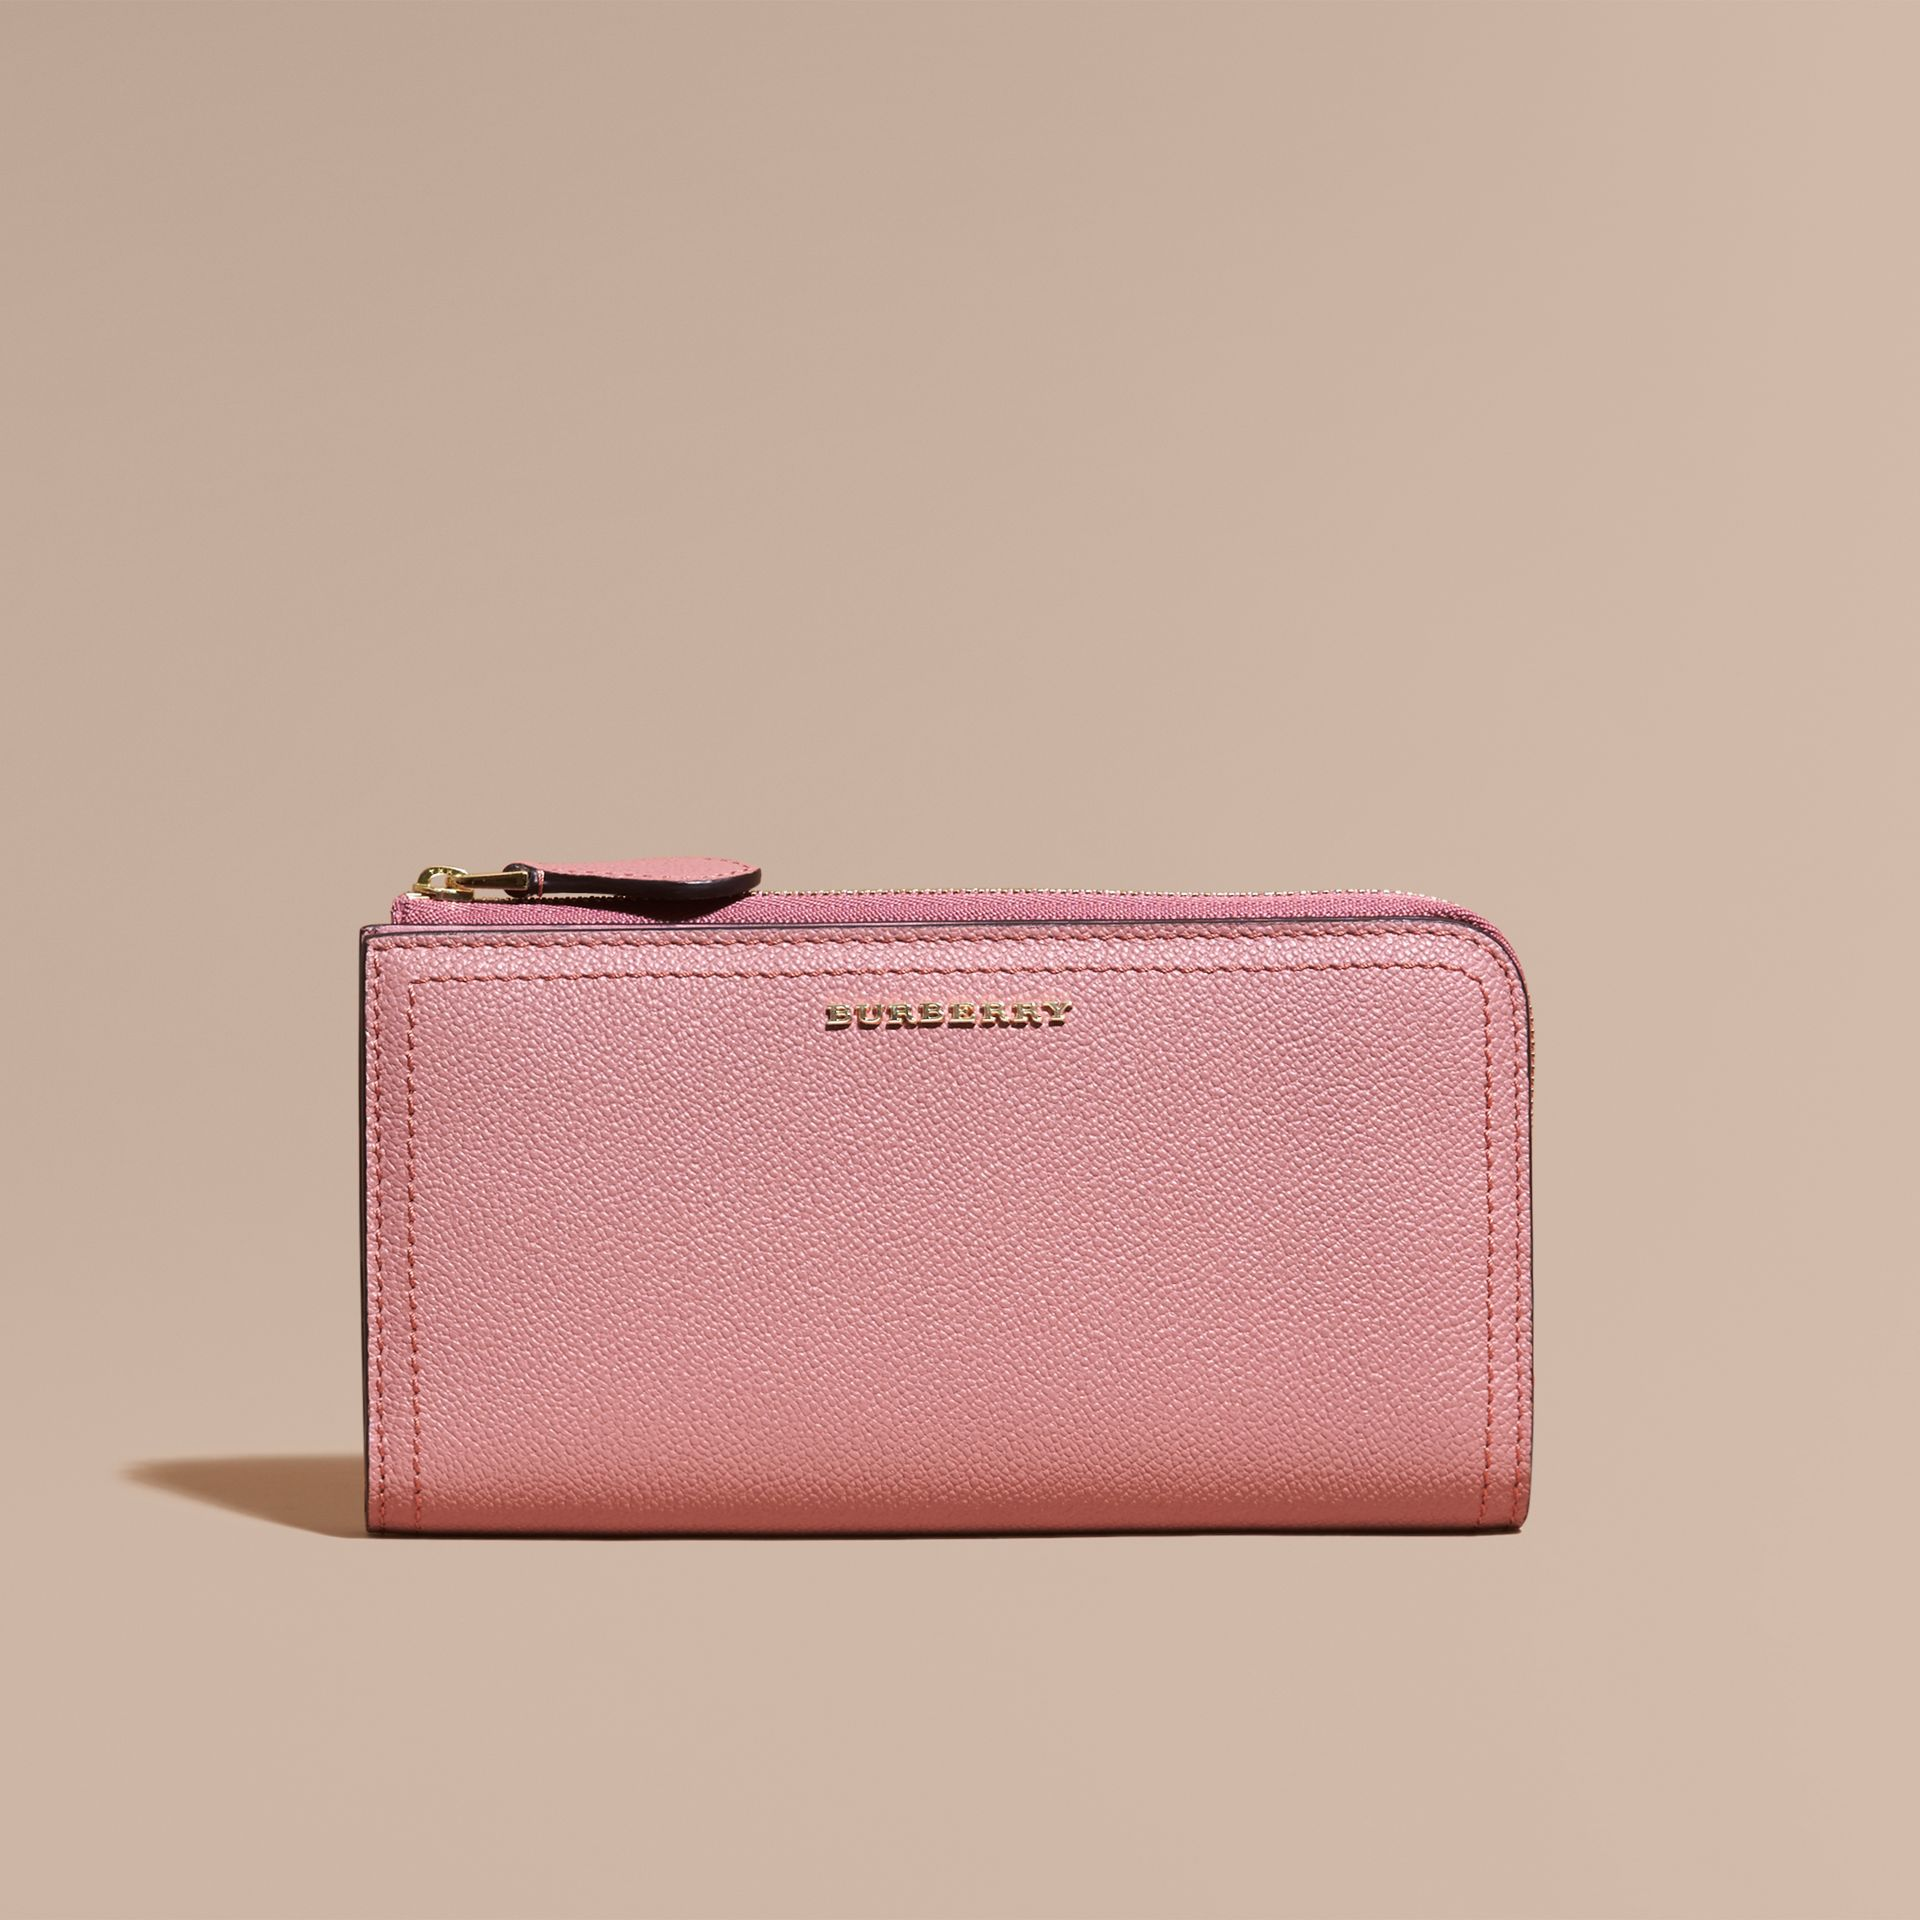 Grainy Leather Ziparound Wallet Dusty Pink - gallery image 3